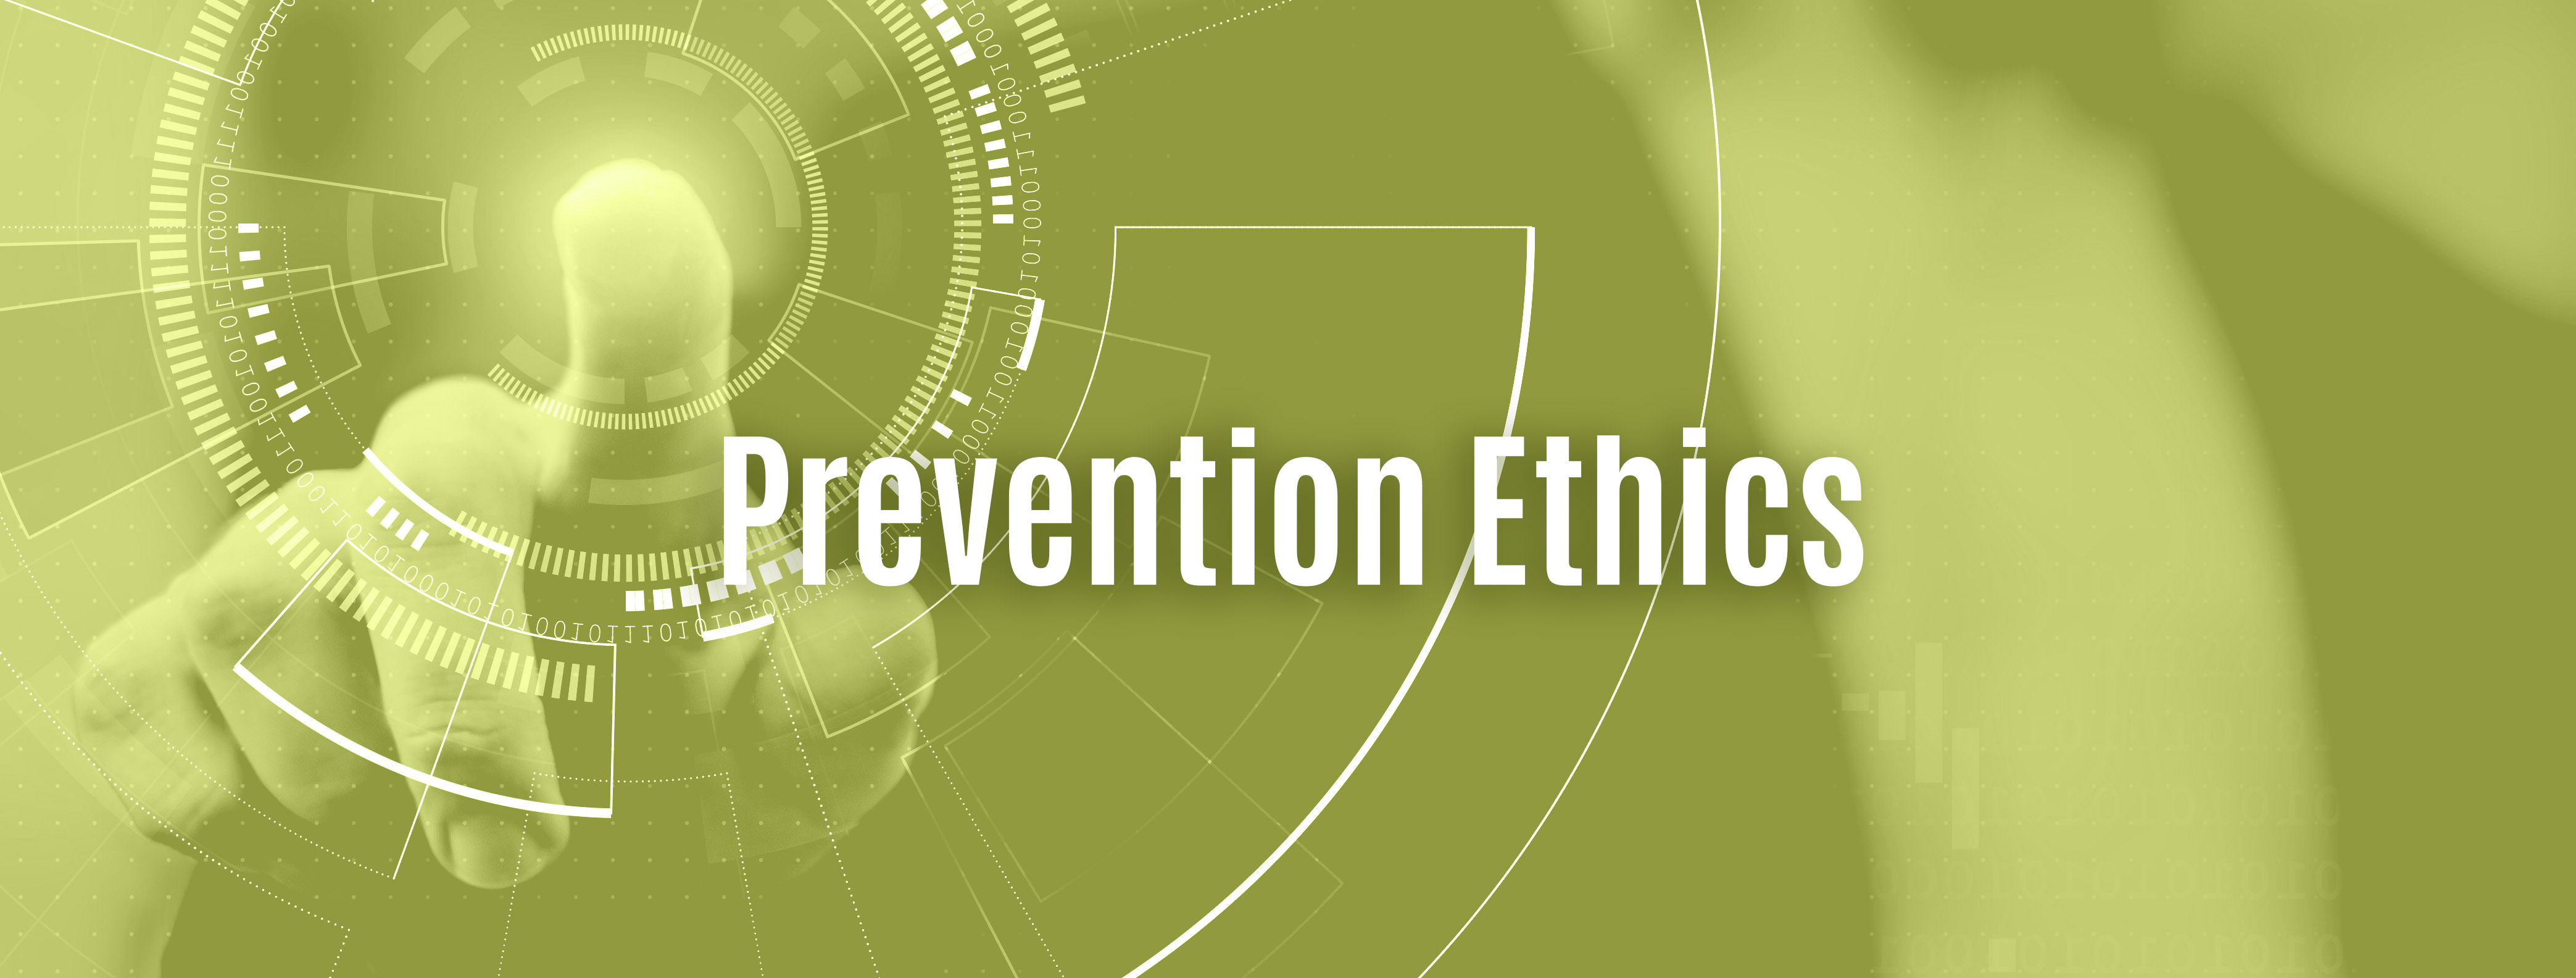 Prevention Ethics